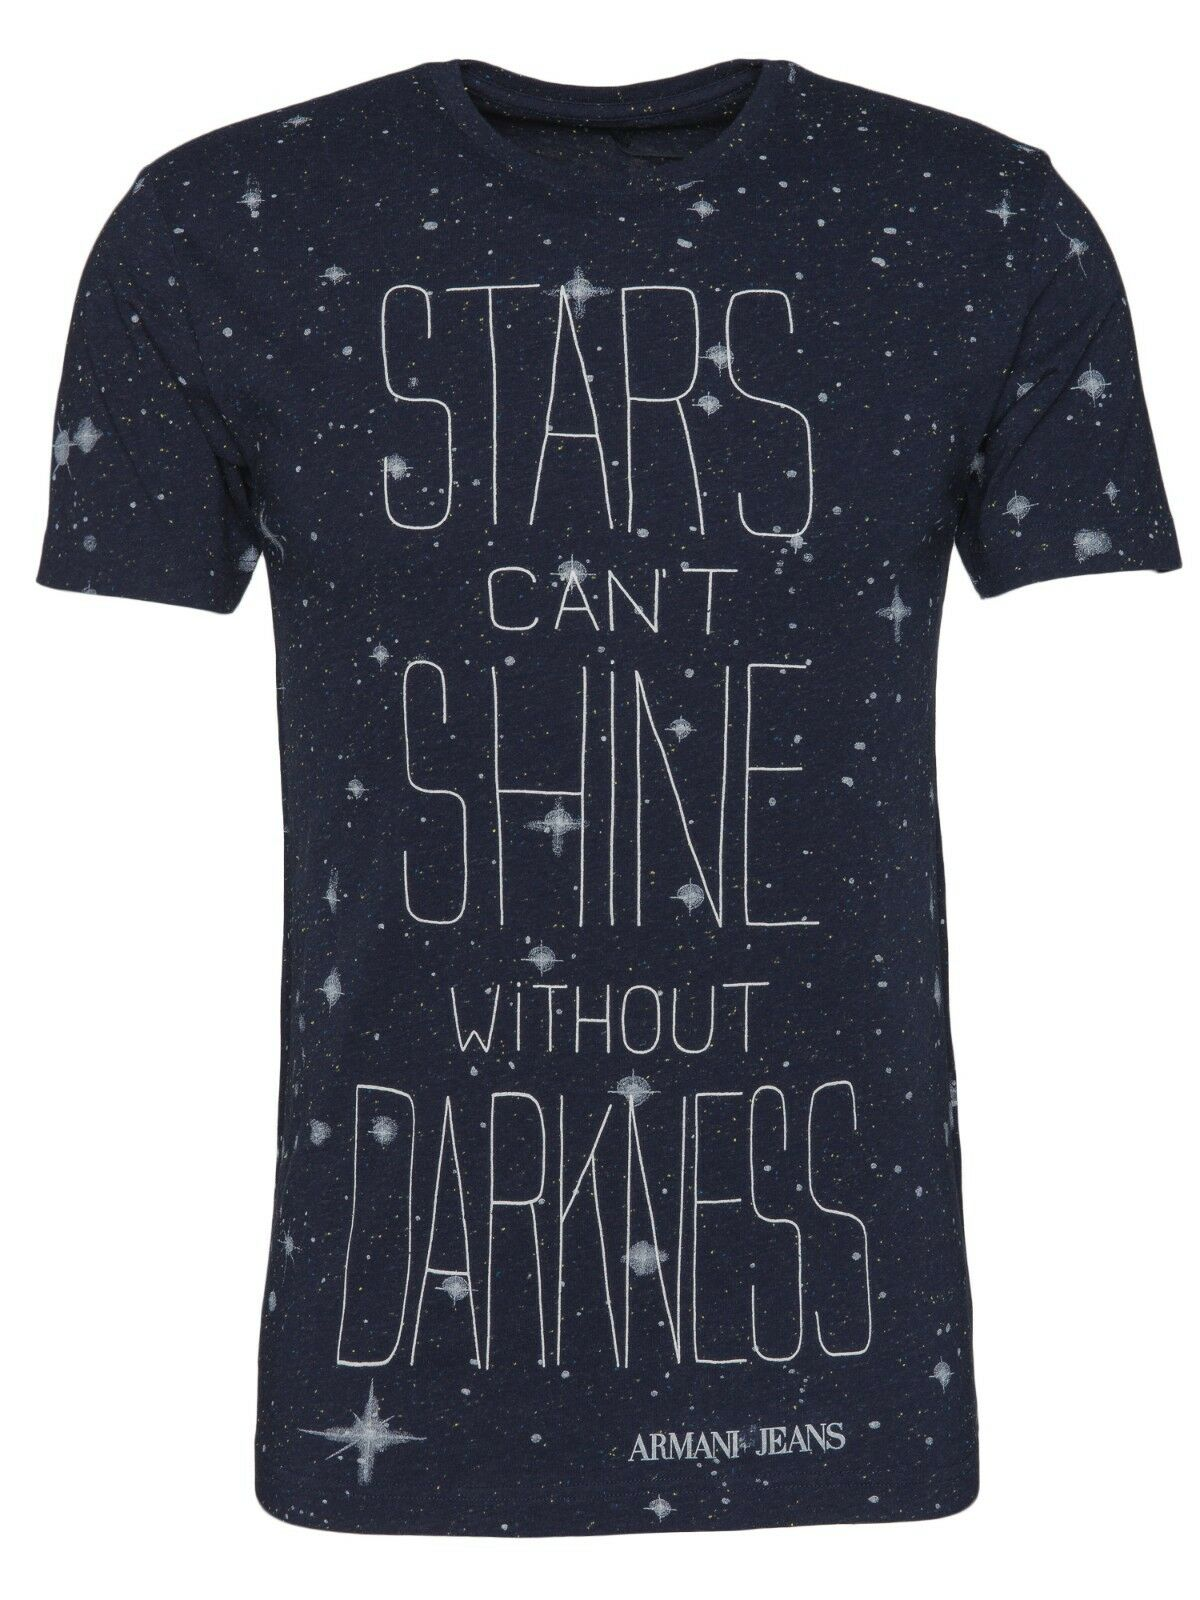 2d5e3b1465d5d Armani Jeans Mens Stars Can't Shine Without Darkness Blue t-shirt All Sizes